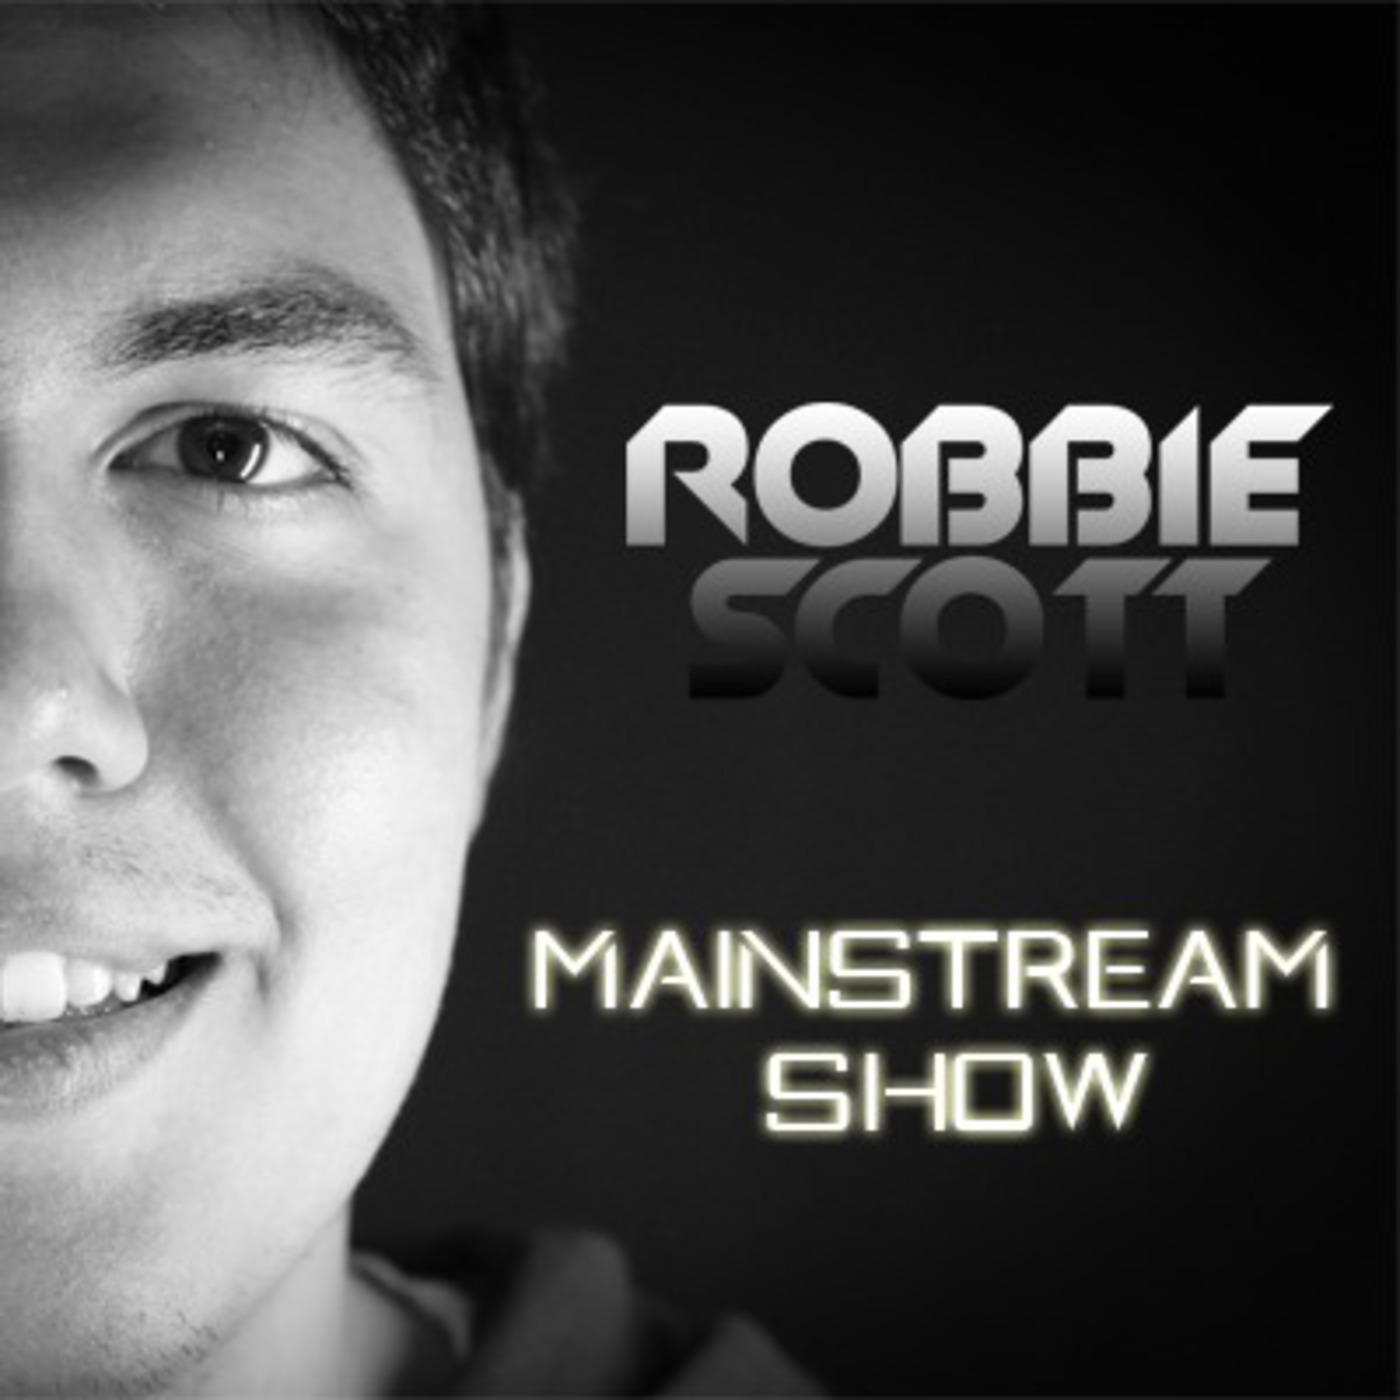 Robbie Scott's Mainstream Show